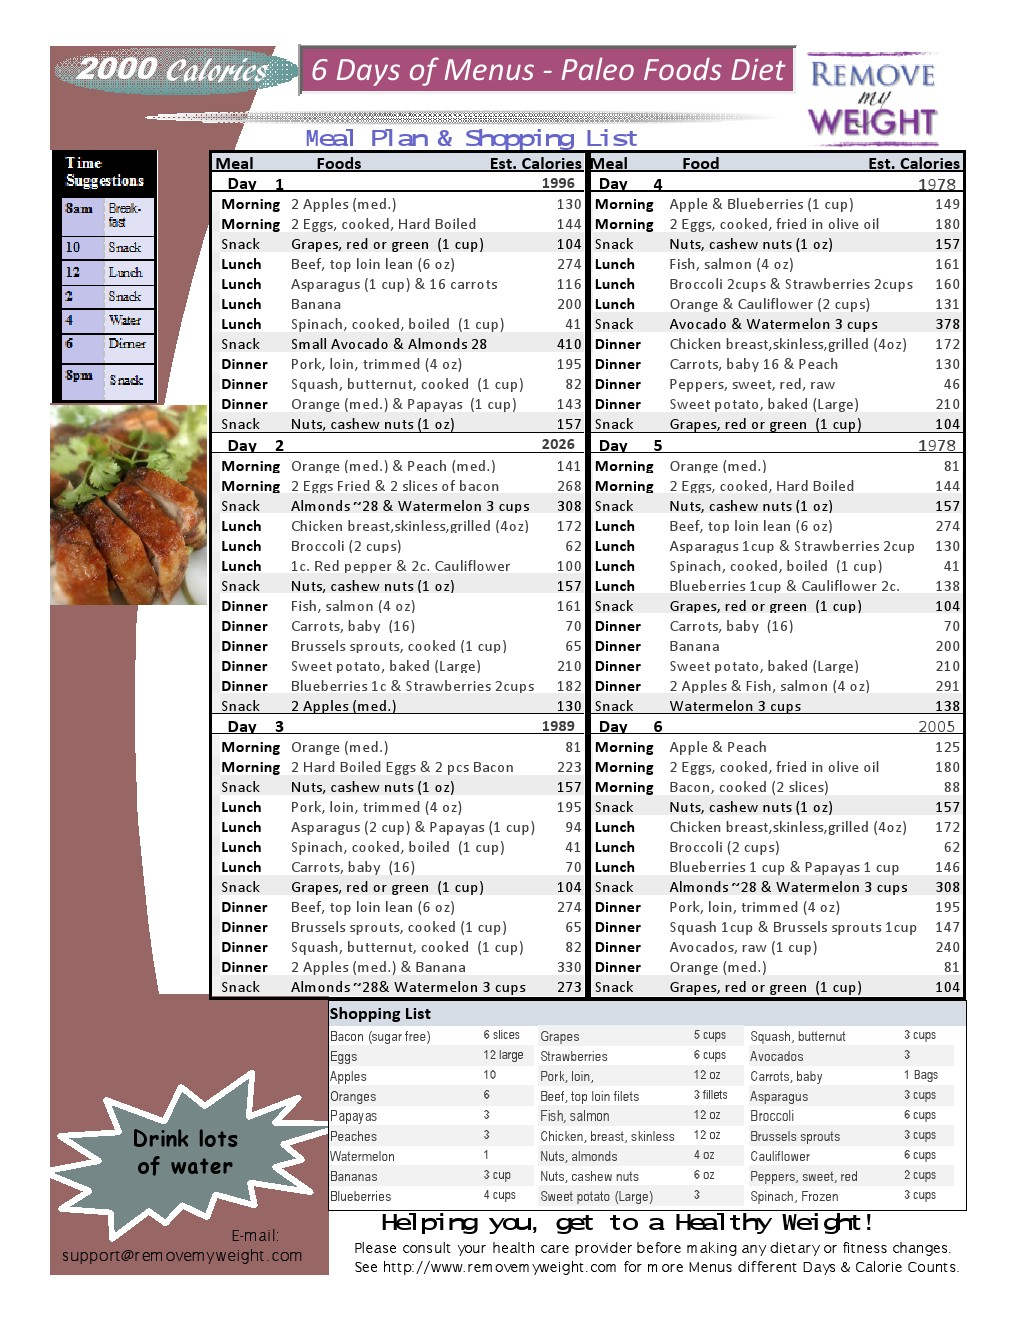 Paleo Diet 6 Day Menu Plan at 2000 Calories a day